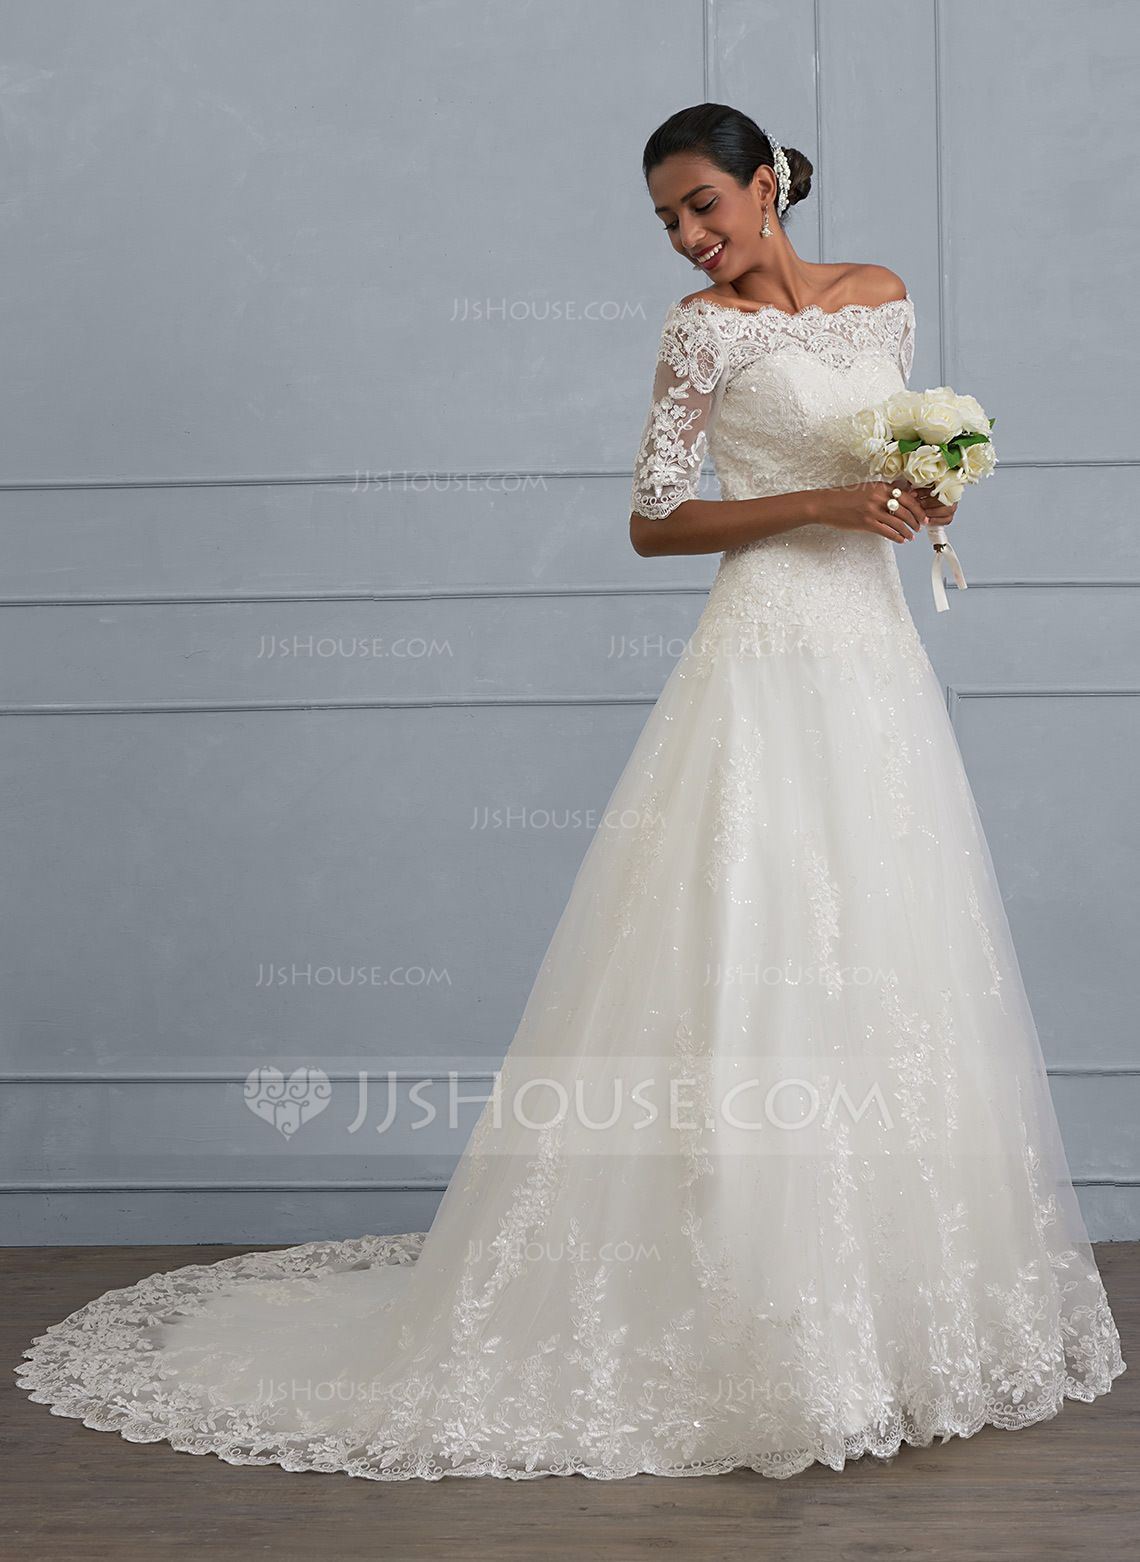 Us 367 00 Ball Gown Off The Shoulder Court Train Tulle Lace Wedding Dress With Beading Sequins Jj S House Ballkleid Hochzeit Hochzeitskleid Ballkleid Kleider Fur Balle